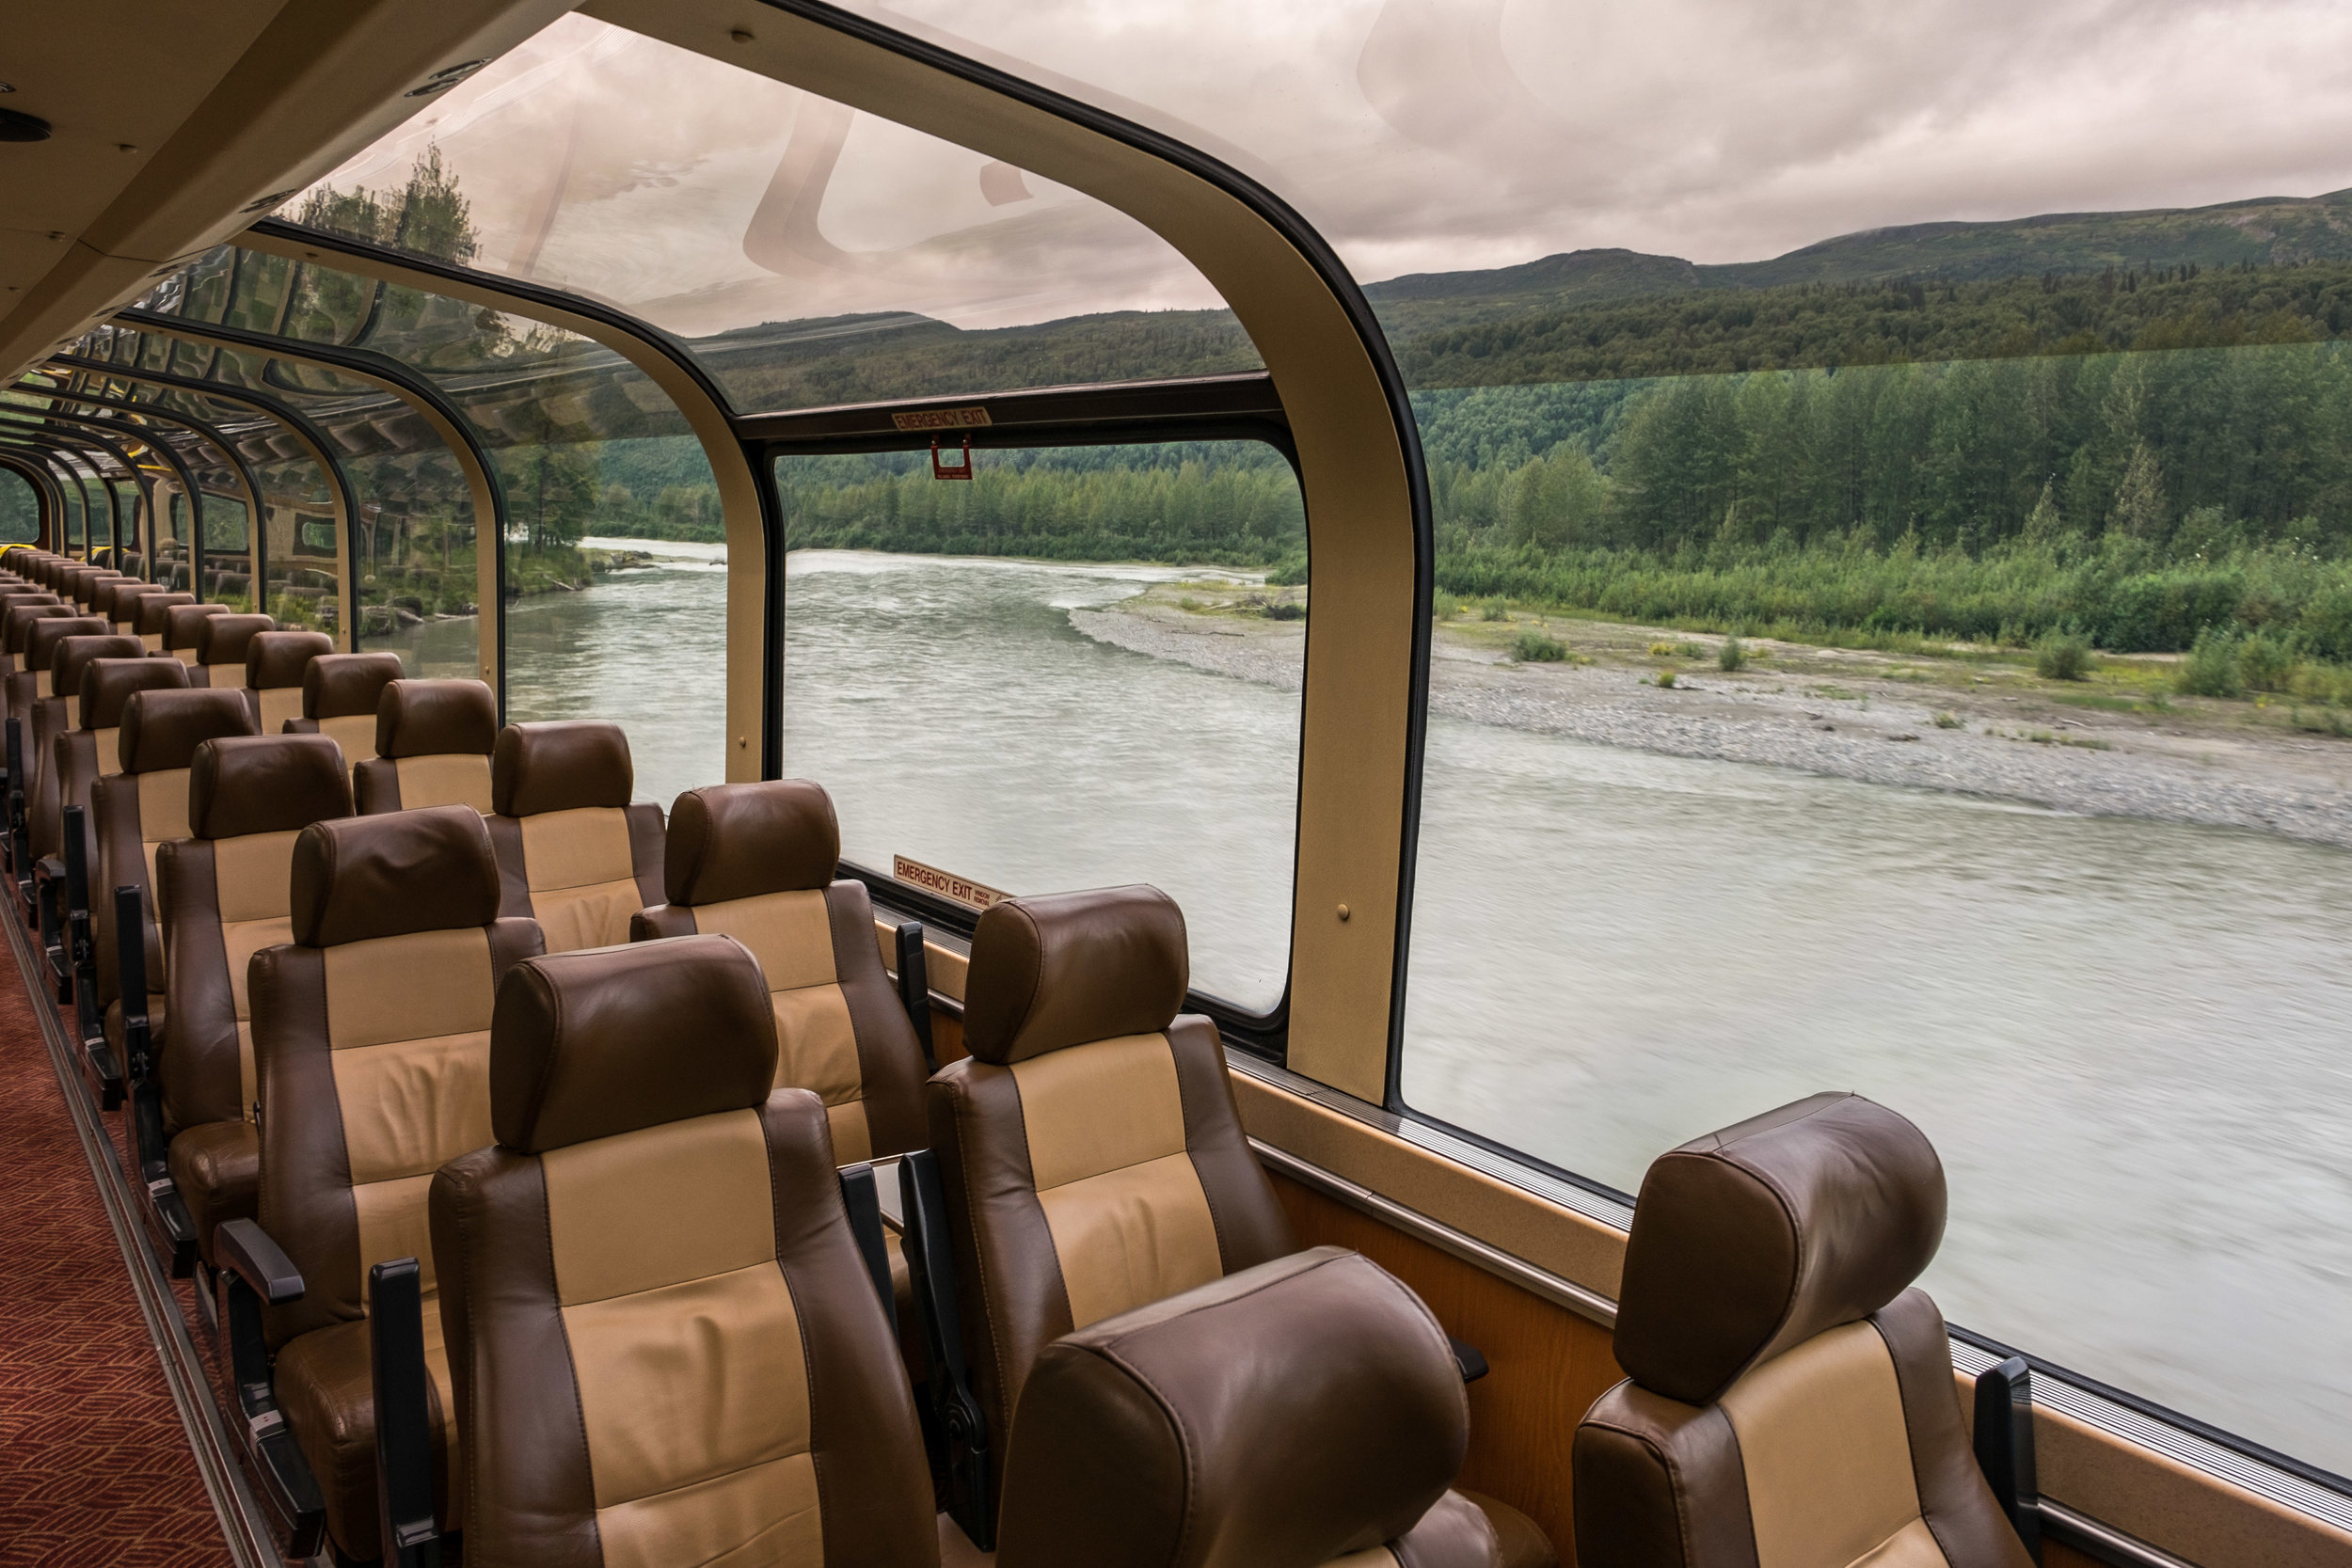 Inside the dome car of the Wilderness Express while traveling the Alaska Railway.